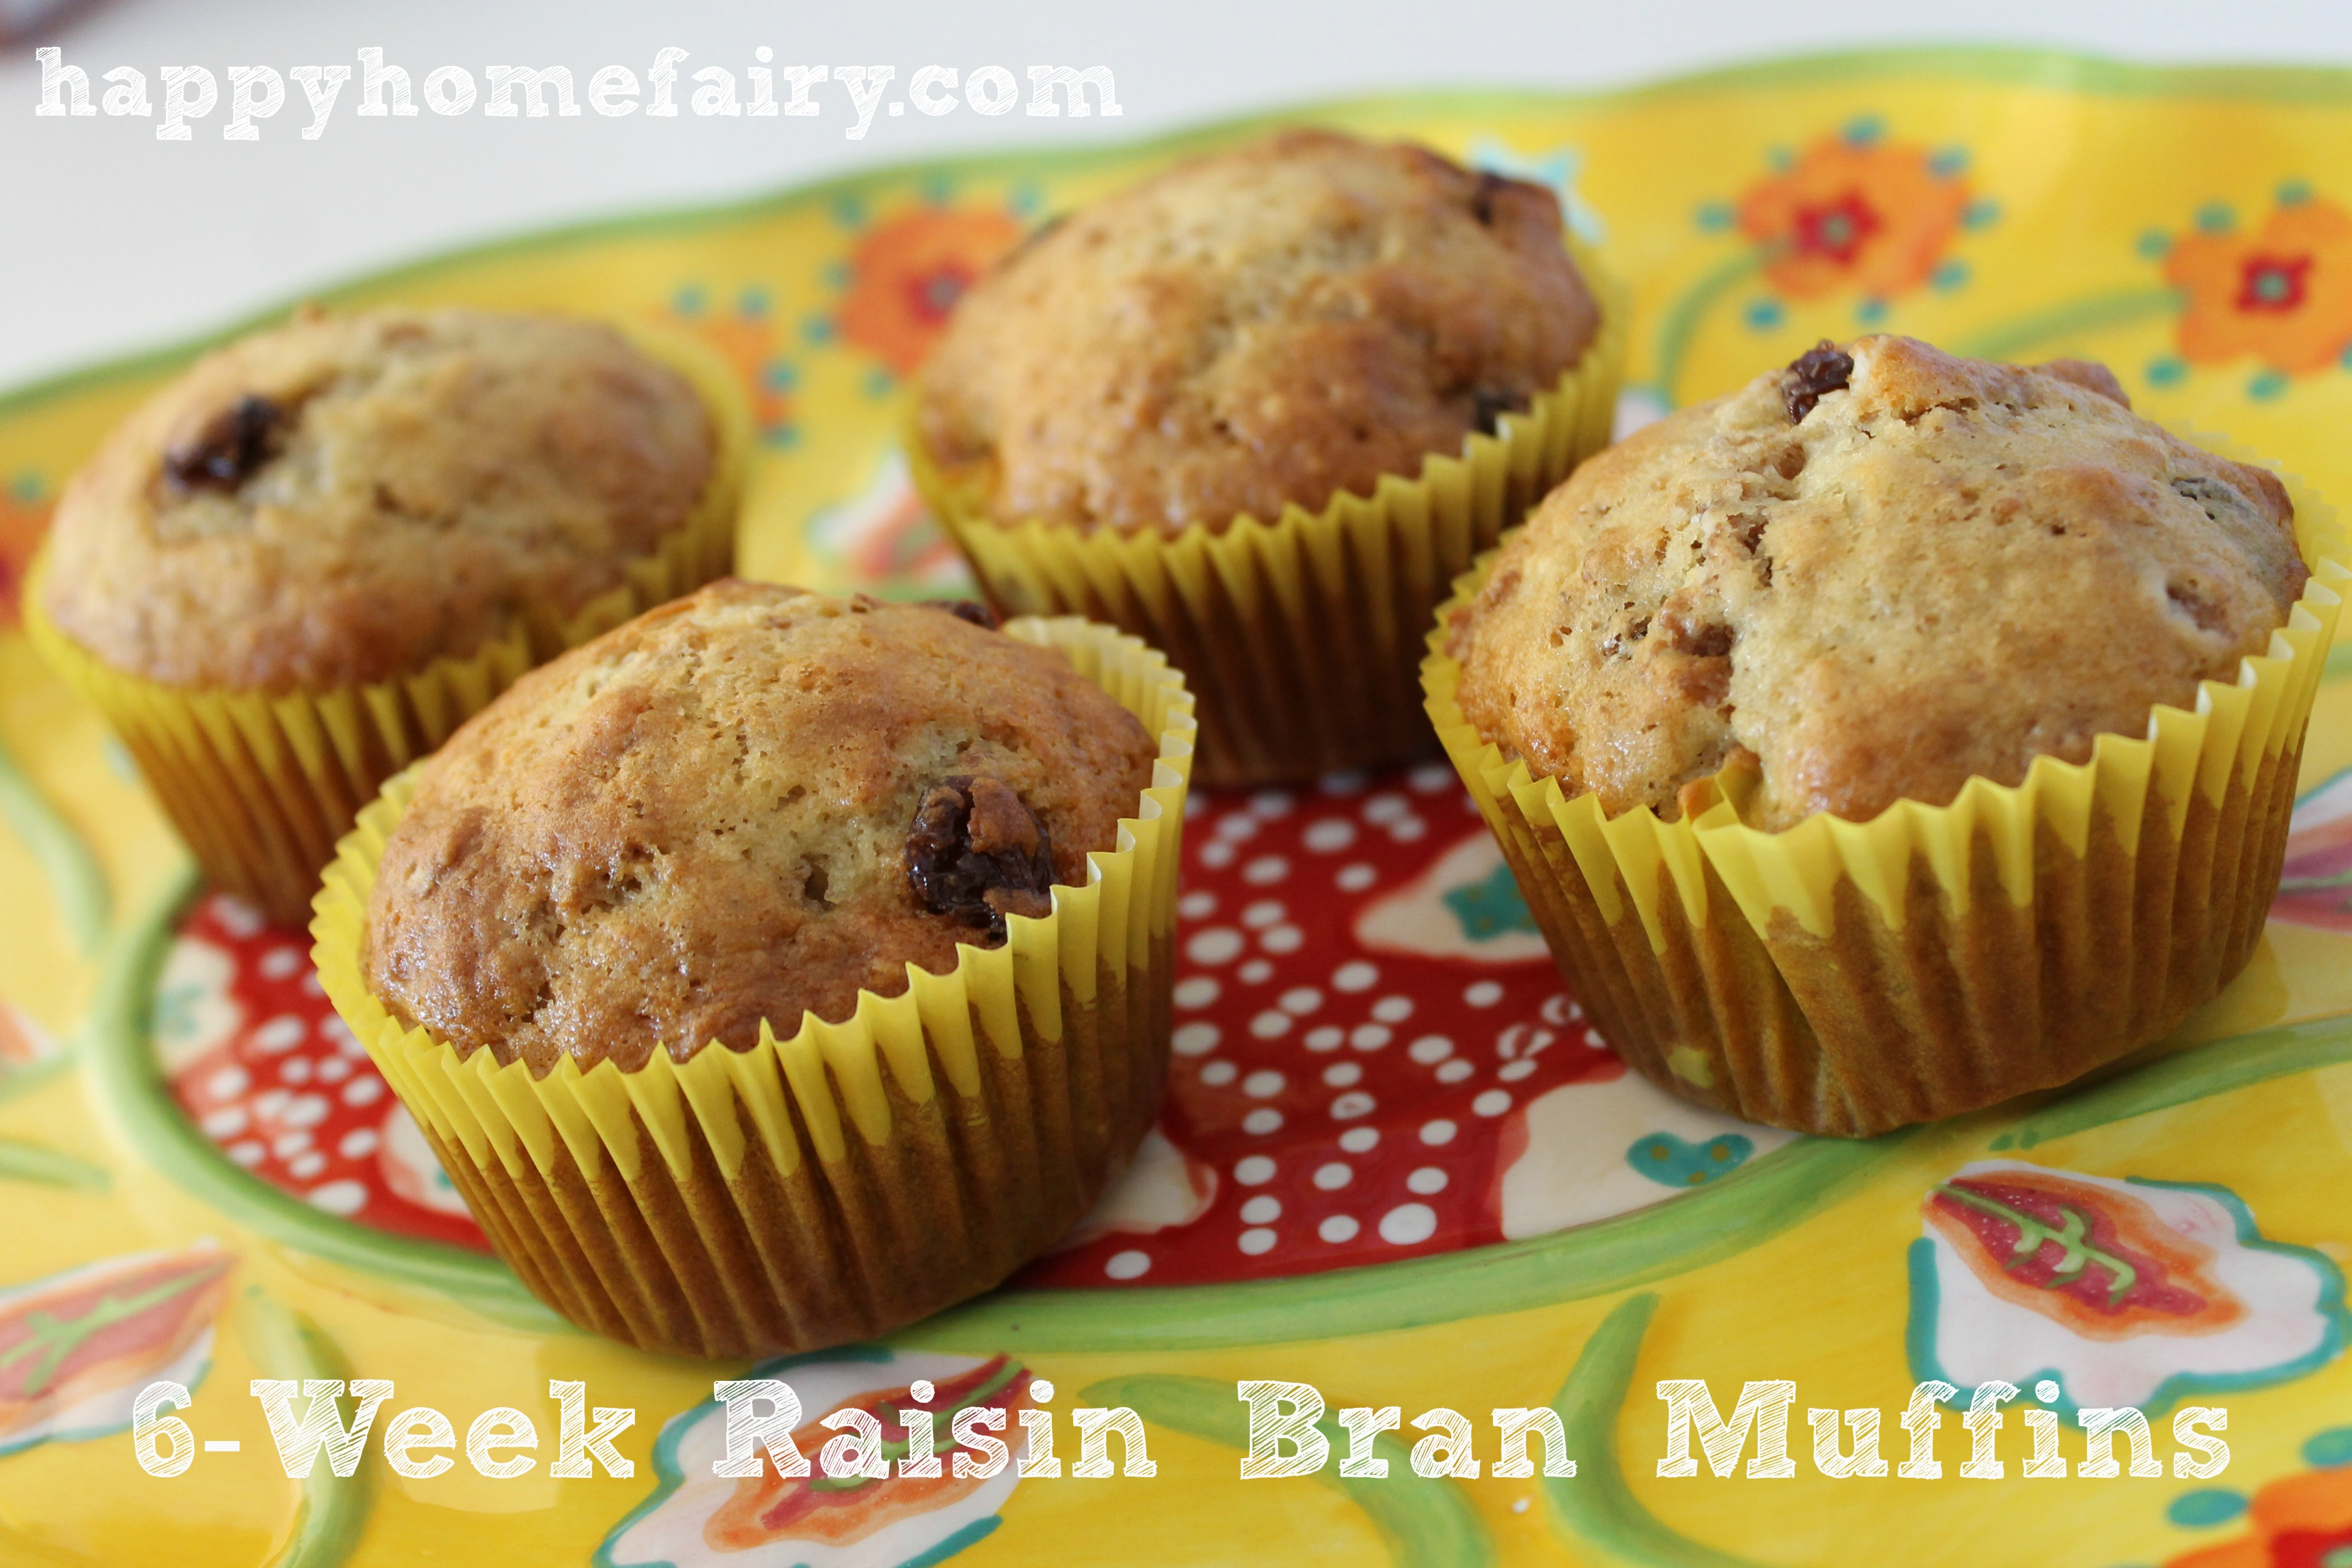 Week Raisin Bran Muffins and the Big Brown Bowl - Happy Home Fairy